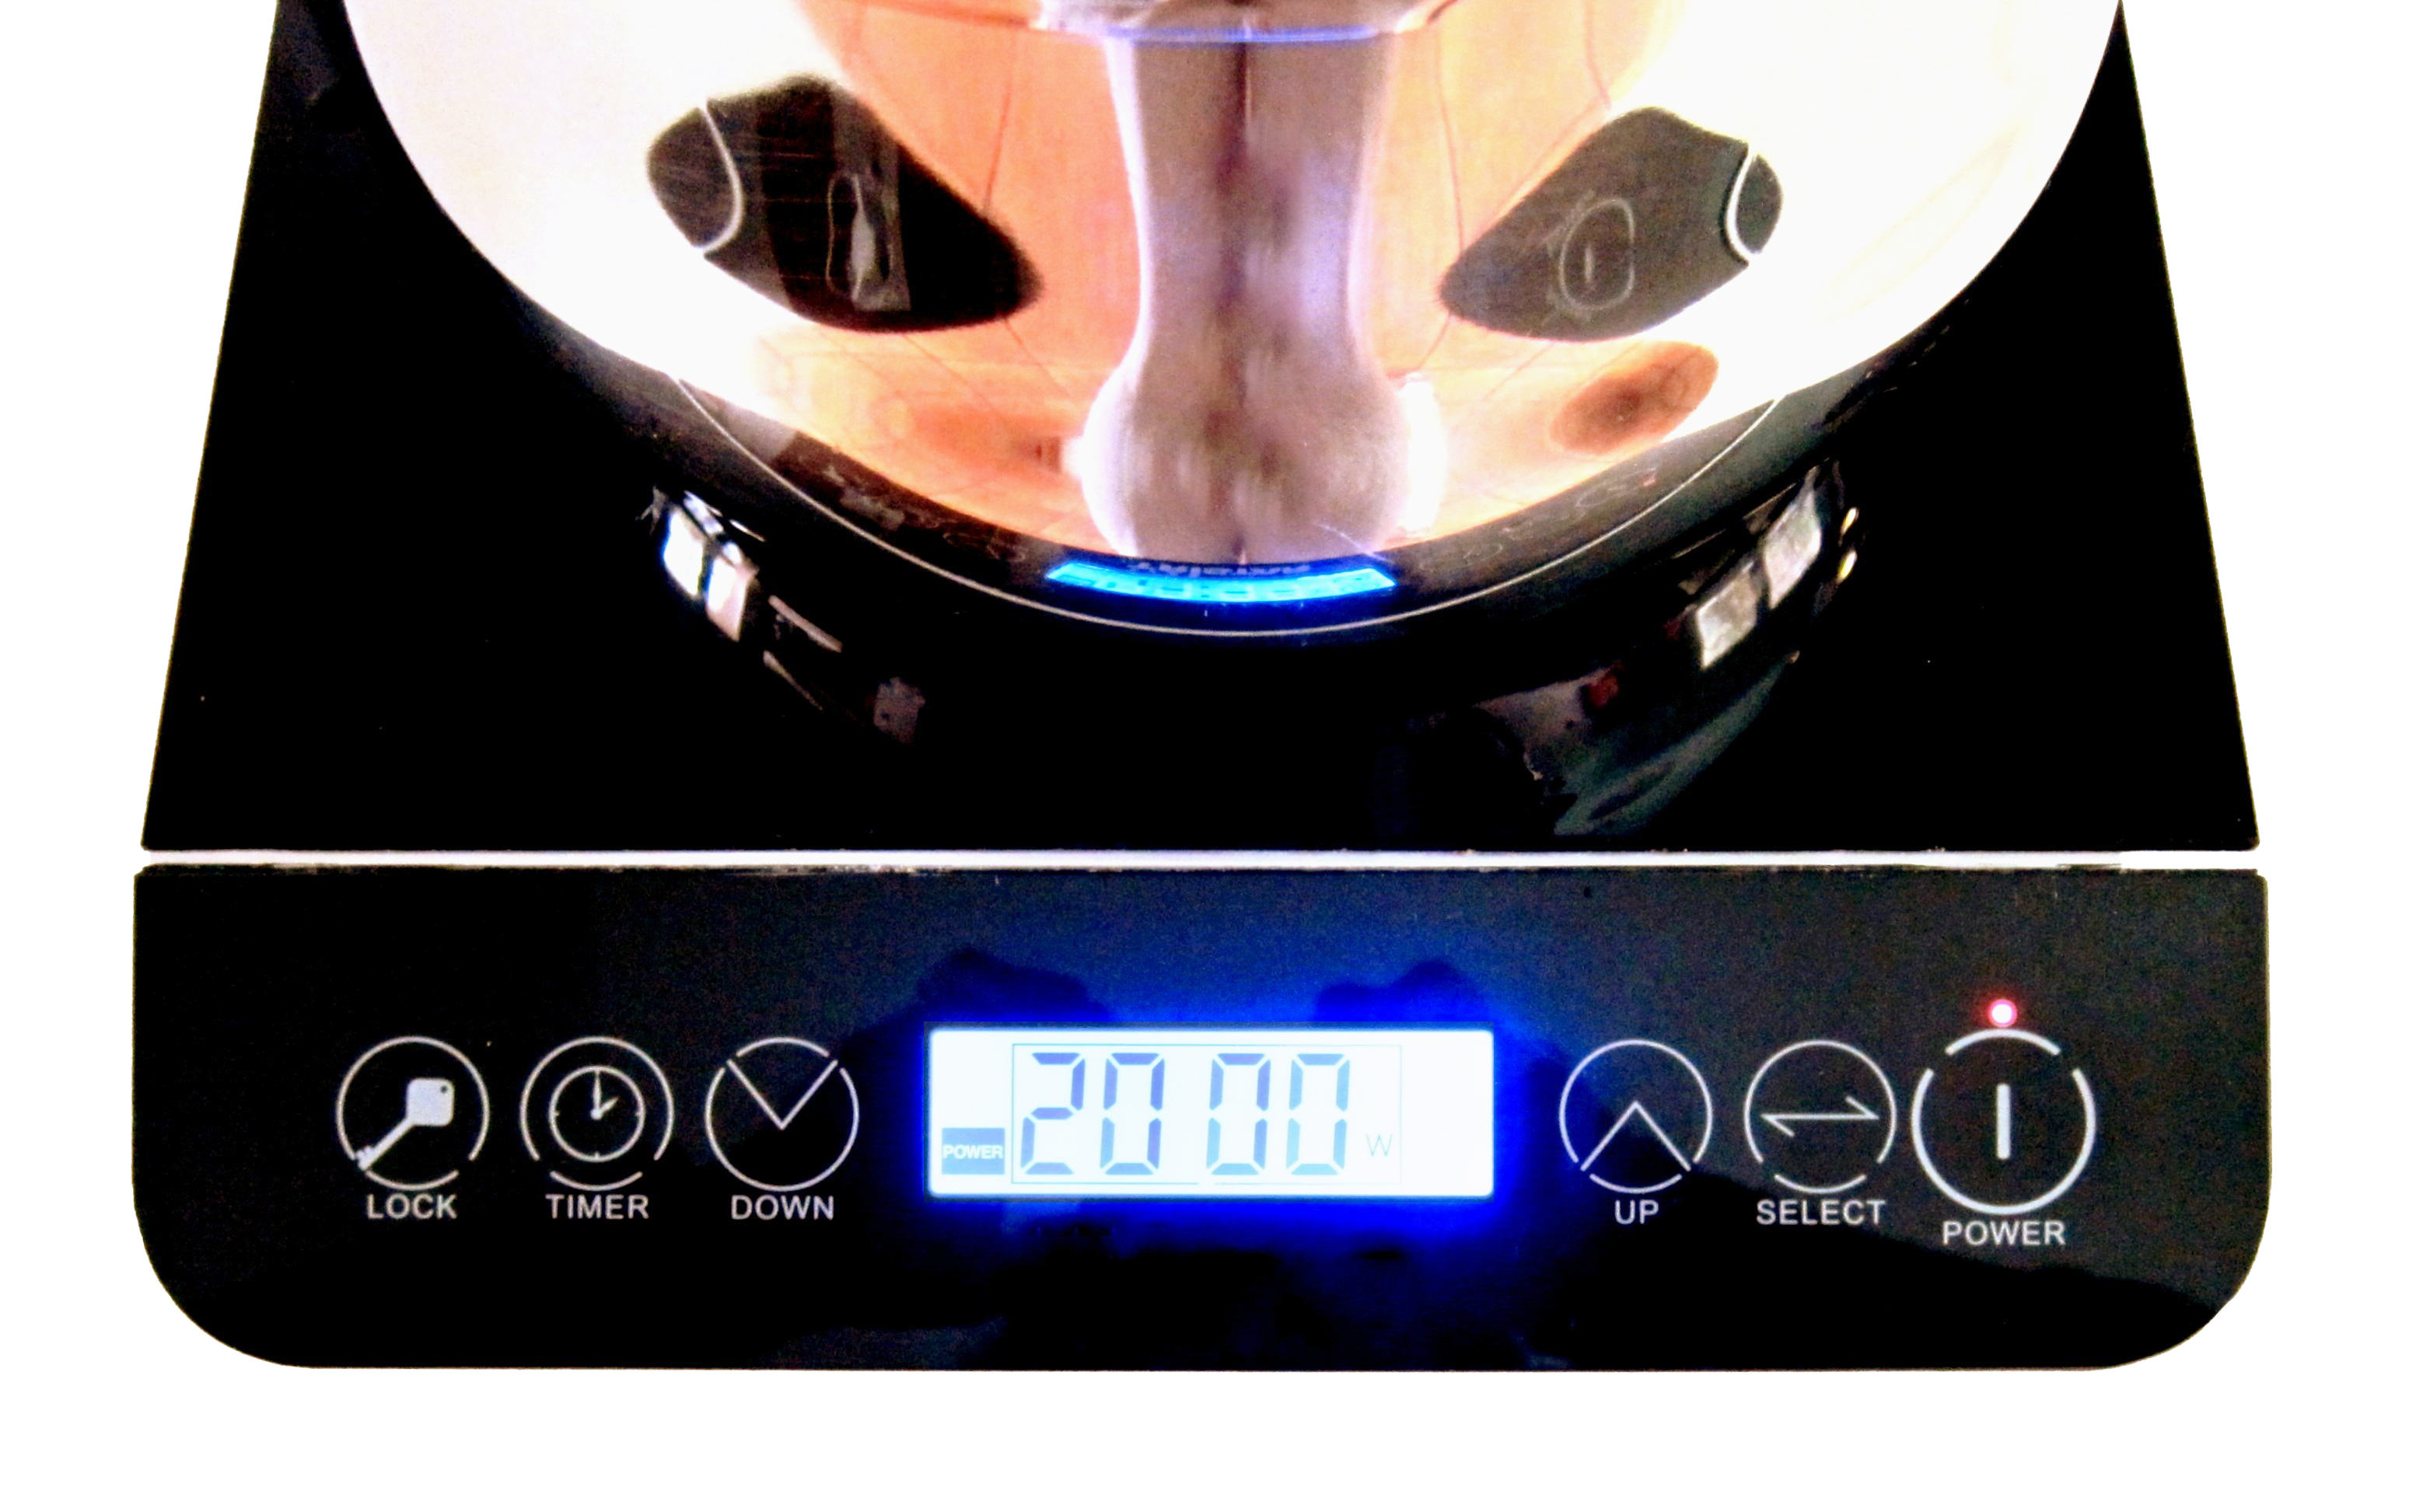 7 Dos Donts Of Pressure Cooking With Induction Hip Wiring Electric Oven And Hob